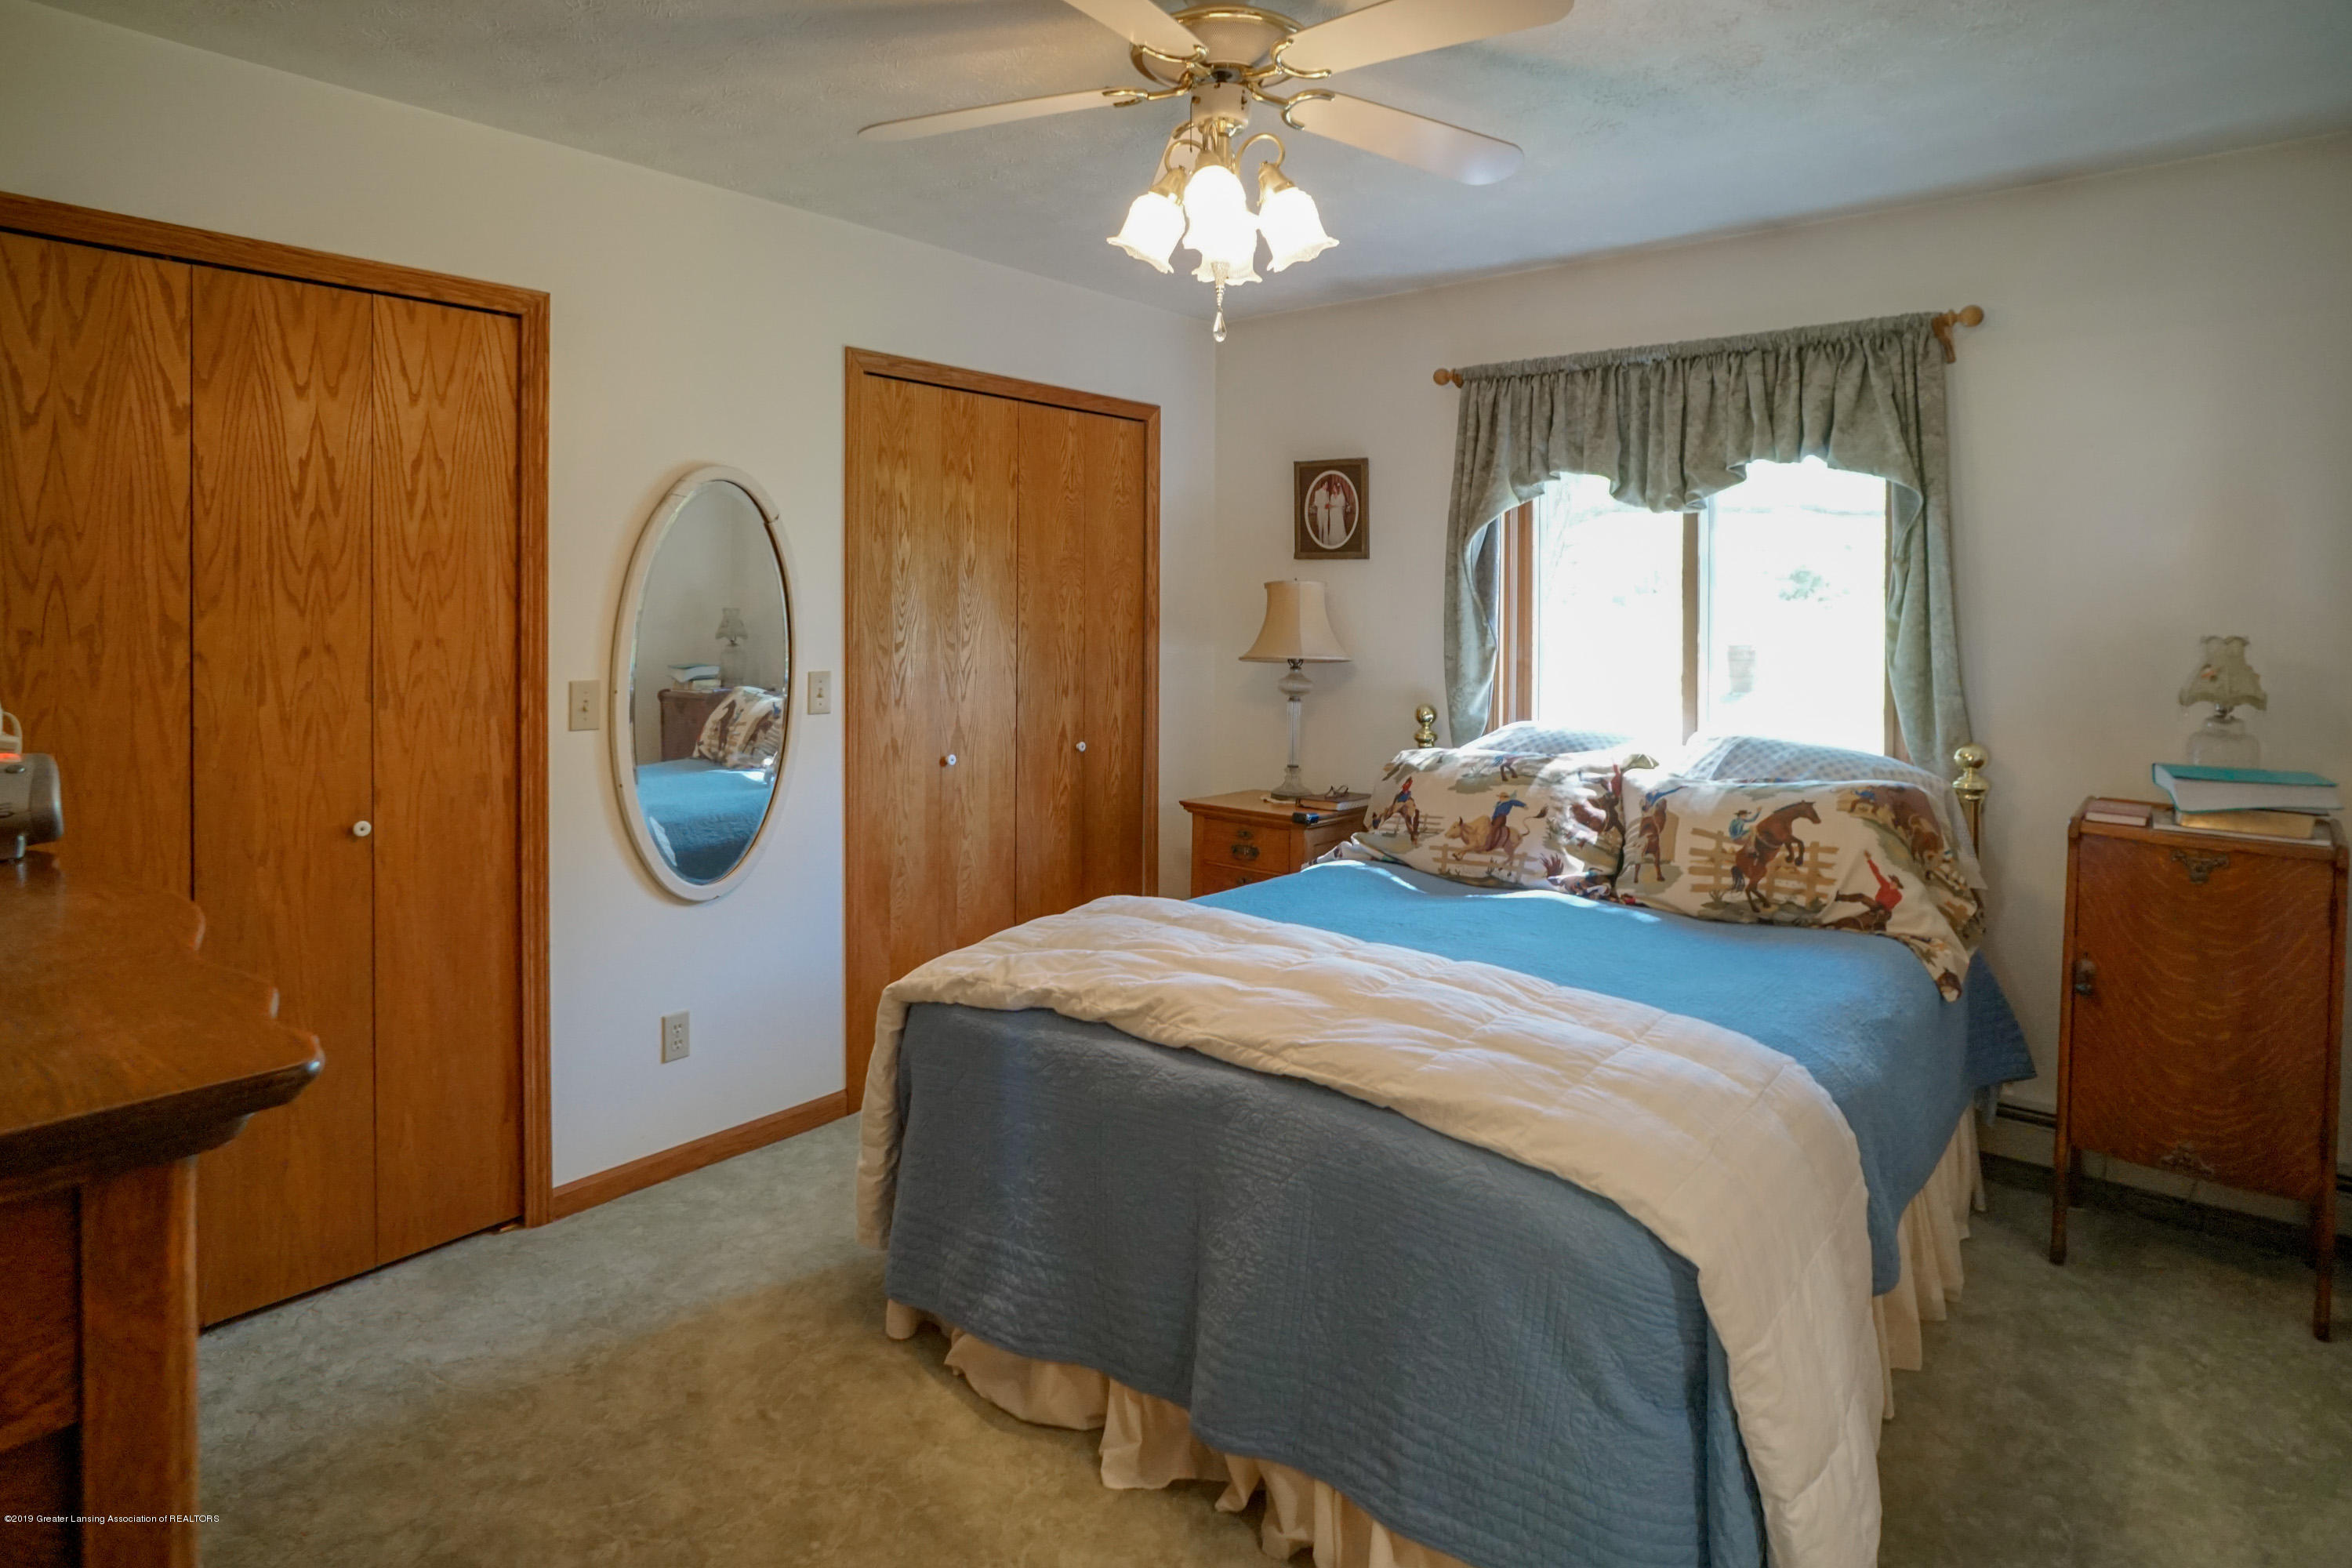 1133 E Grand River Ave - Bed - 12